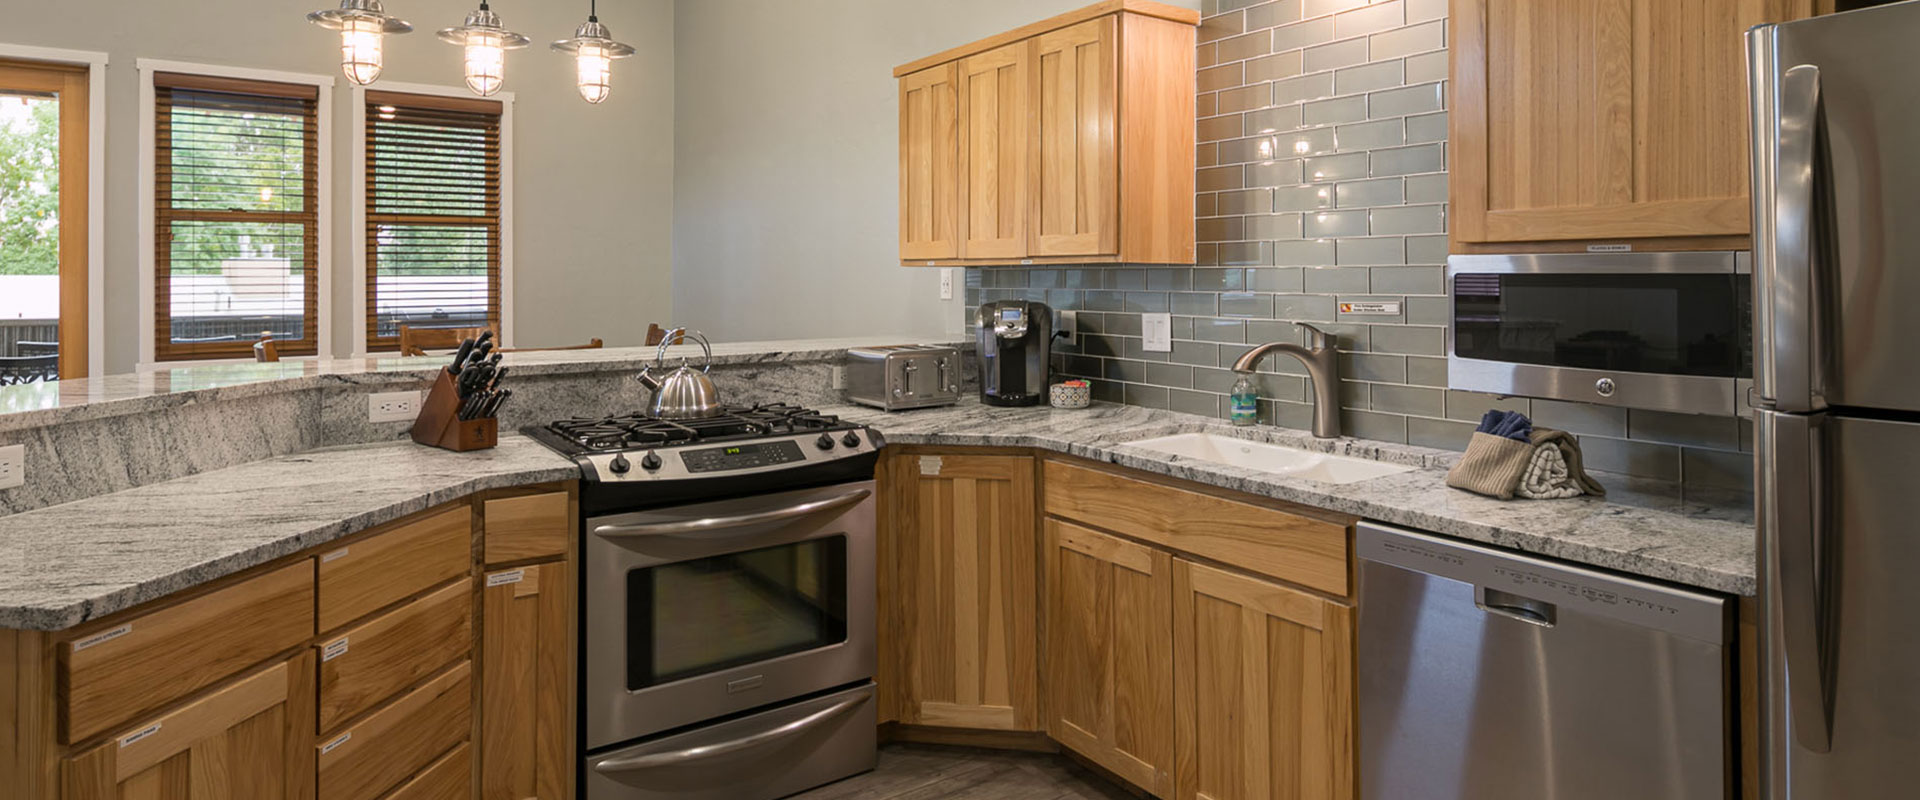 A view of red rocks, verdant trees, vegetation and flat grasslands set against the backdrop of the charcoal grey silhouette of the majestic sandstone cliffs of Moab, Utah.